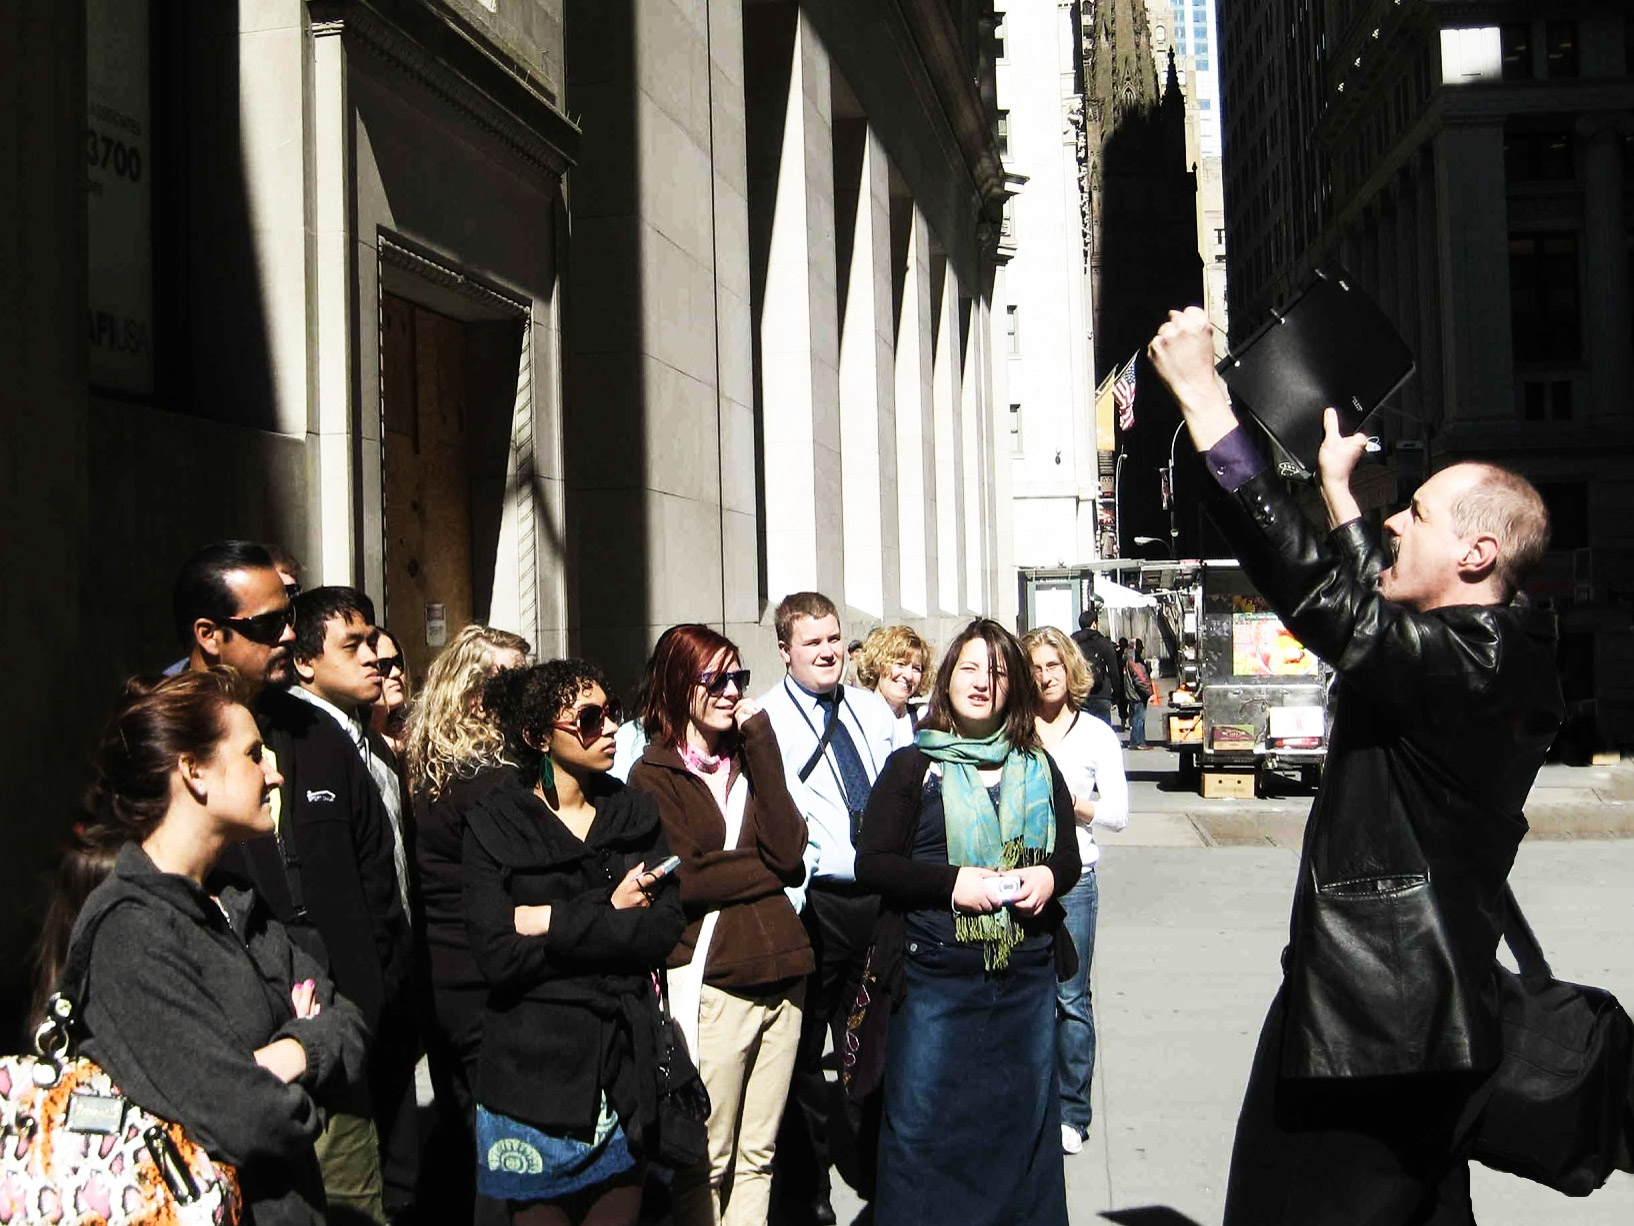 Tom with Wall Street tour group